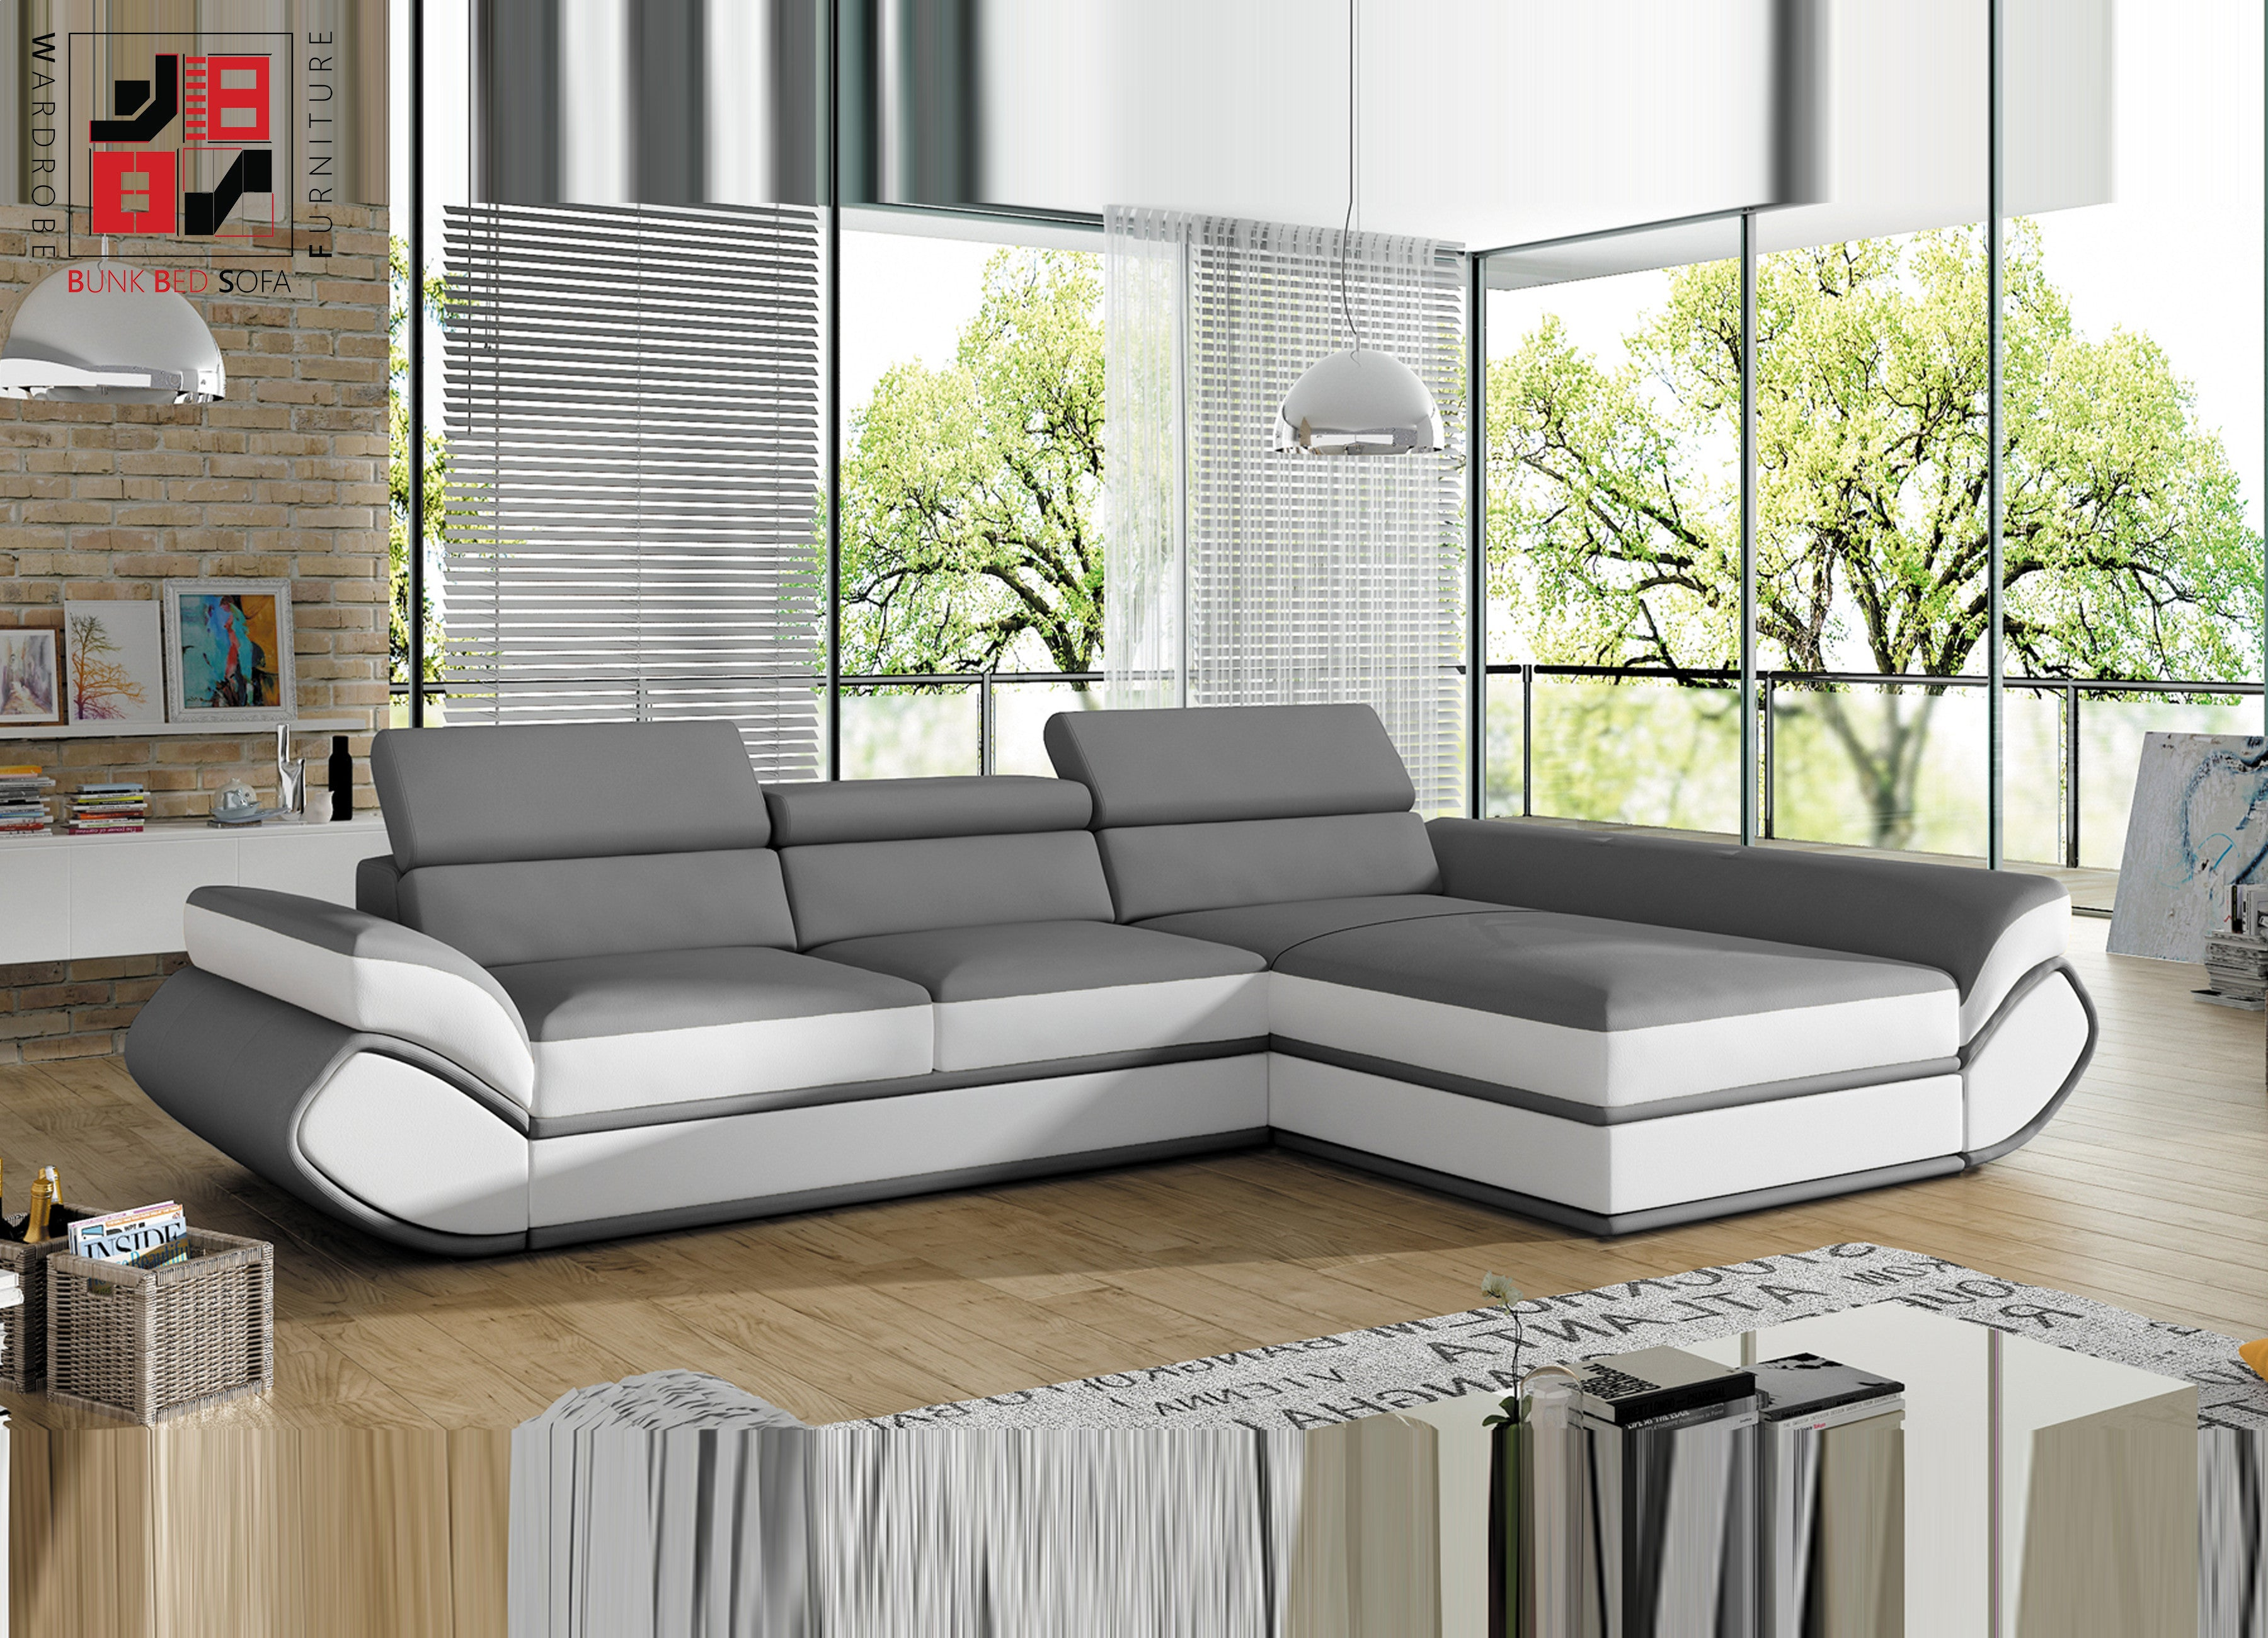 UNIVERSE MINI   This Isnu0027t Just Ordinary Corner Sofa Bed, With Corrugated  Springs In The Seats You Will Have New Sitting Experience.